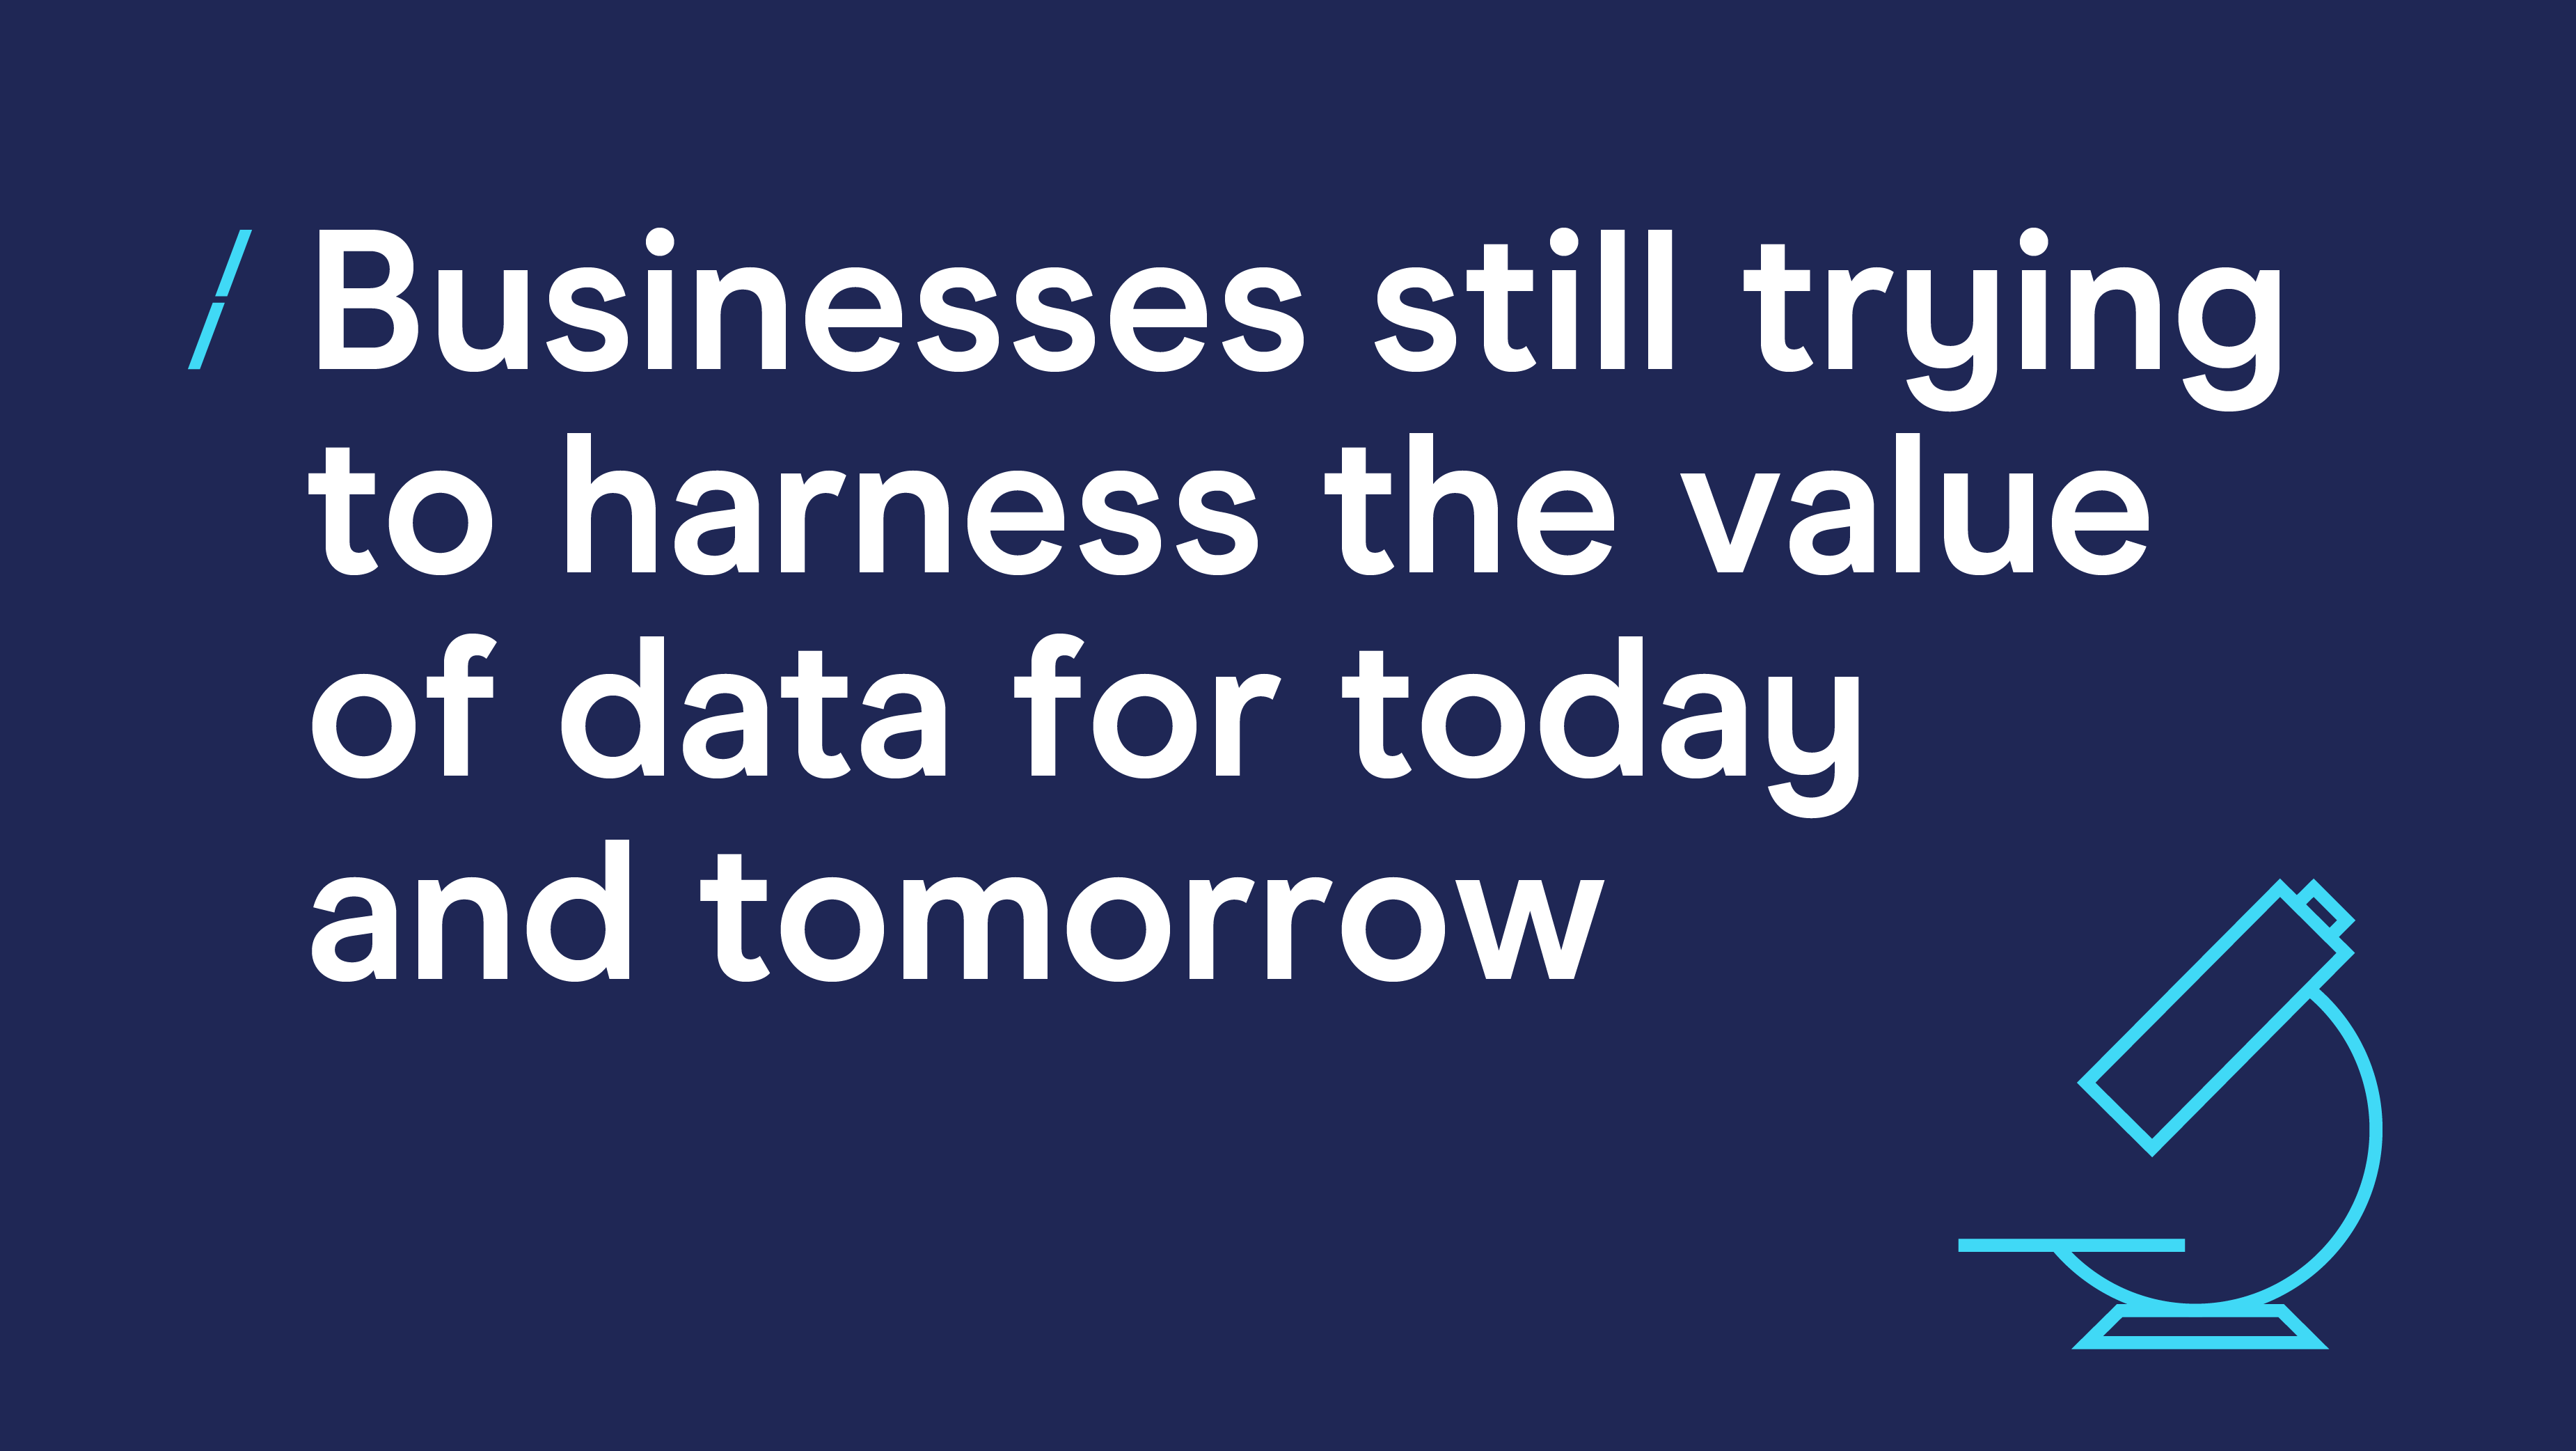 Businesses still trying to harness the value of data for today and tomorrow.png